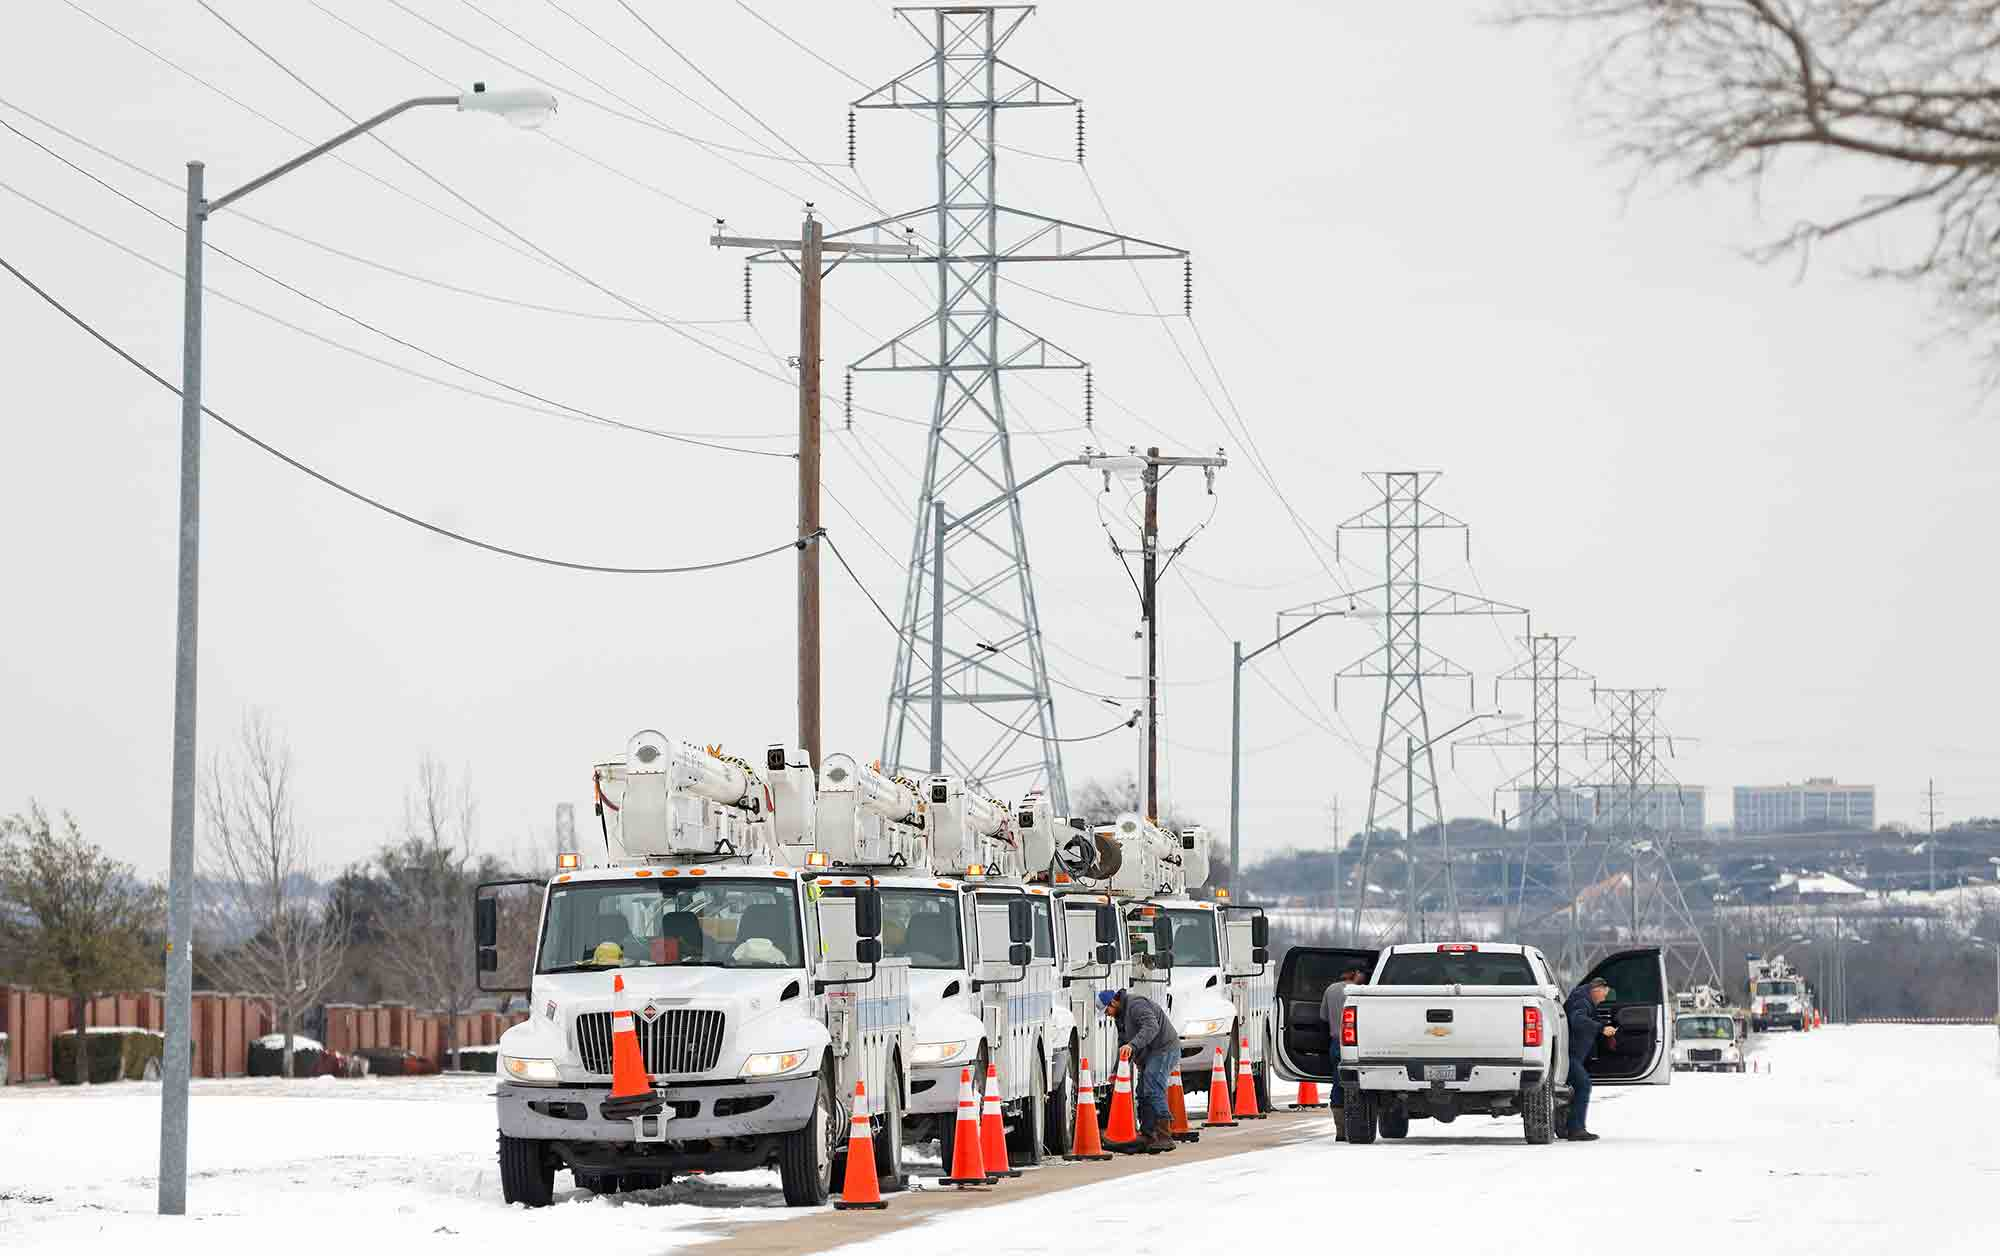 Electricity service trucks lined up ahead of use in Fort Worth, Texas on Feb. 16